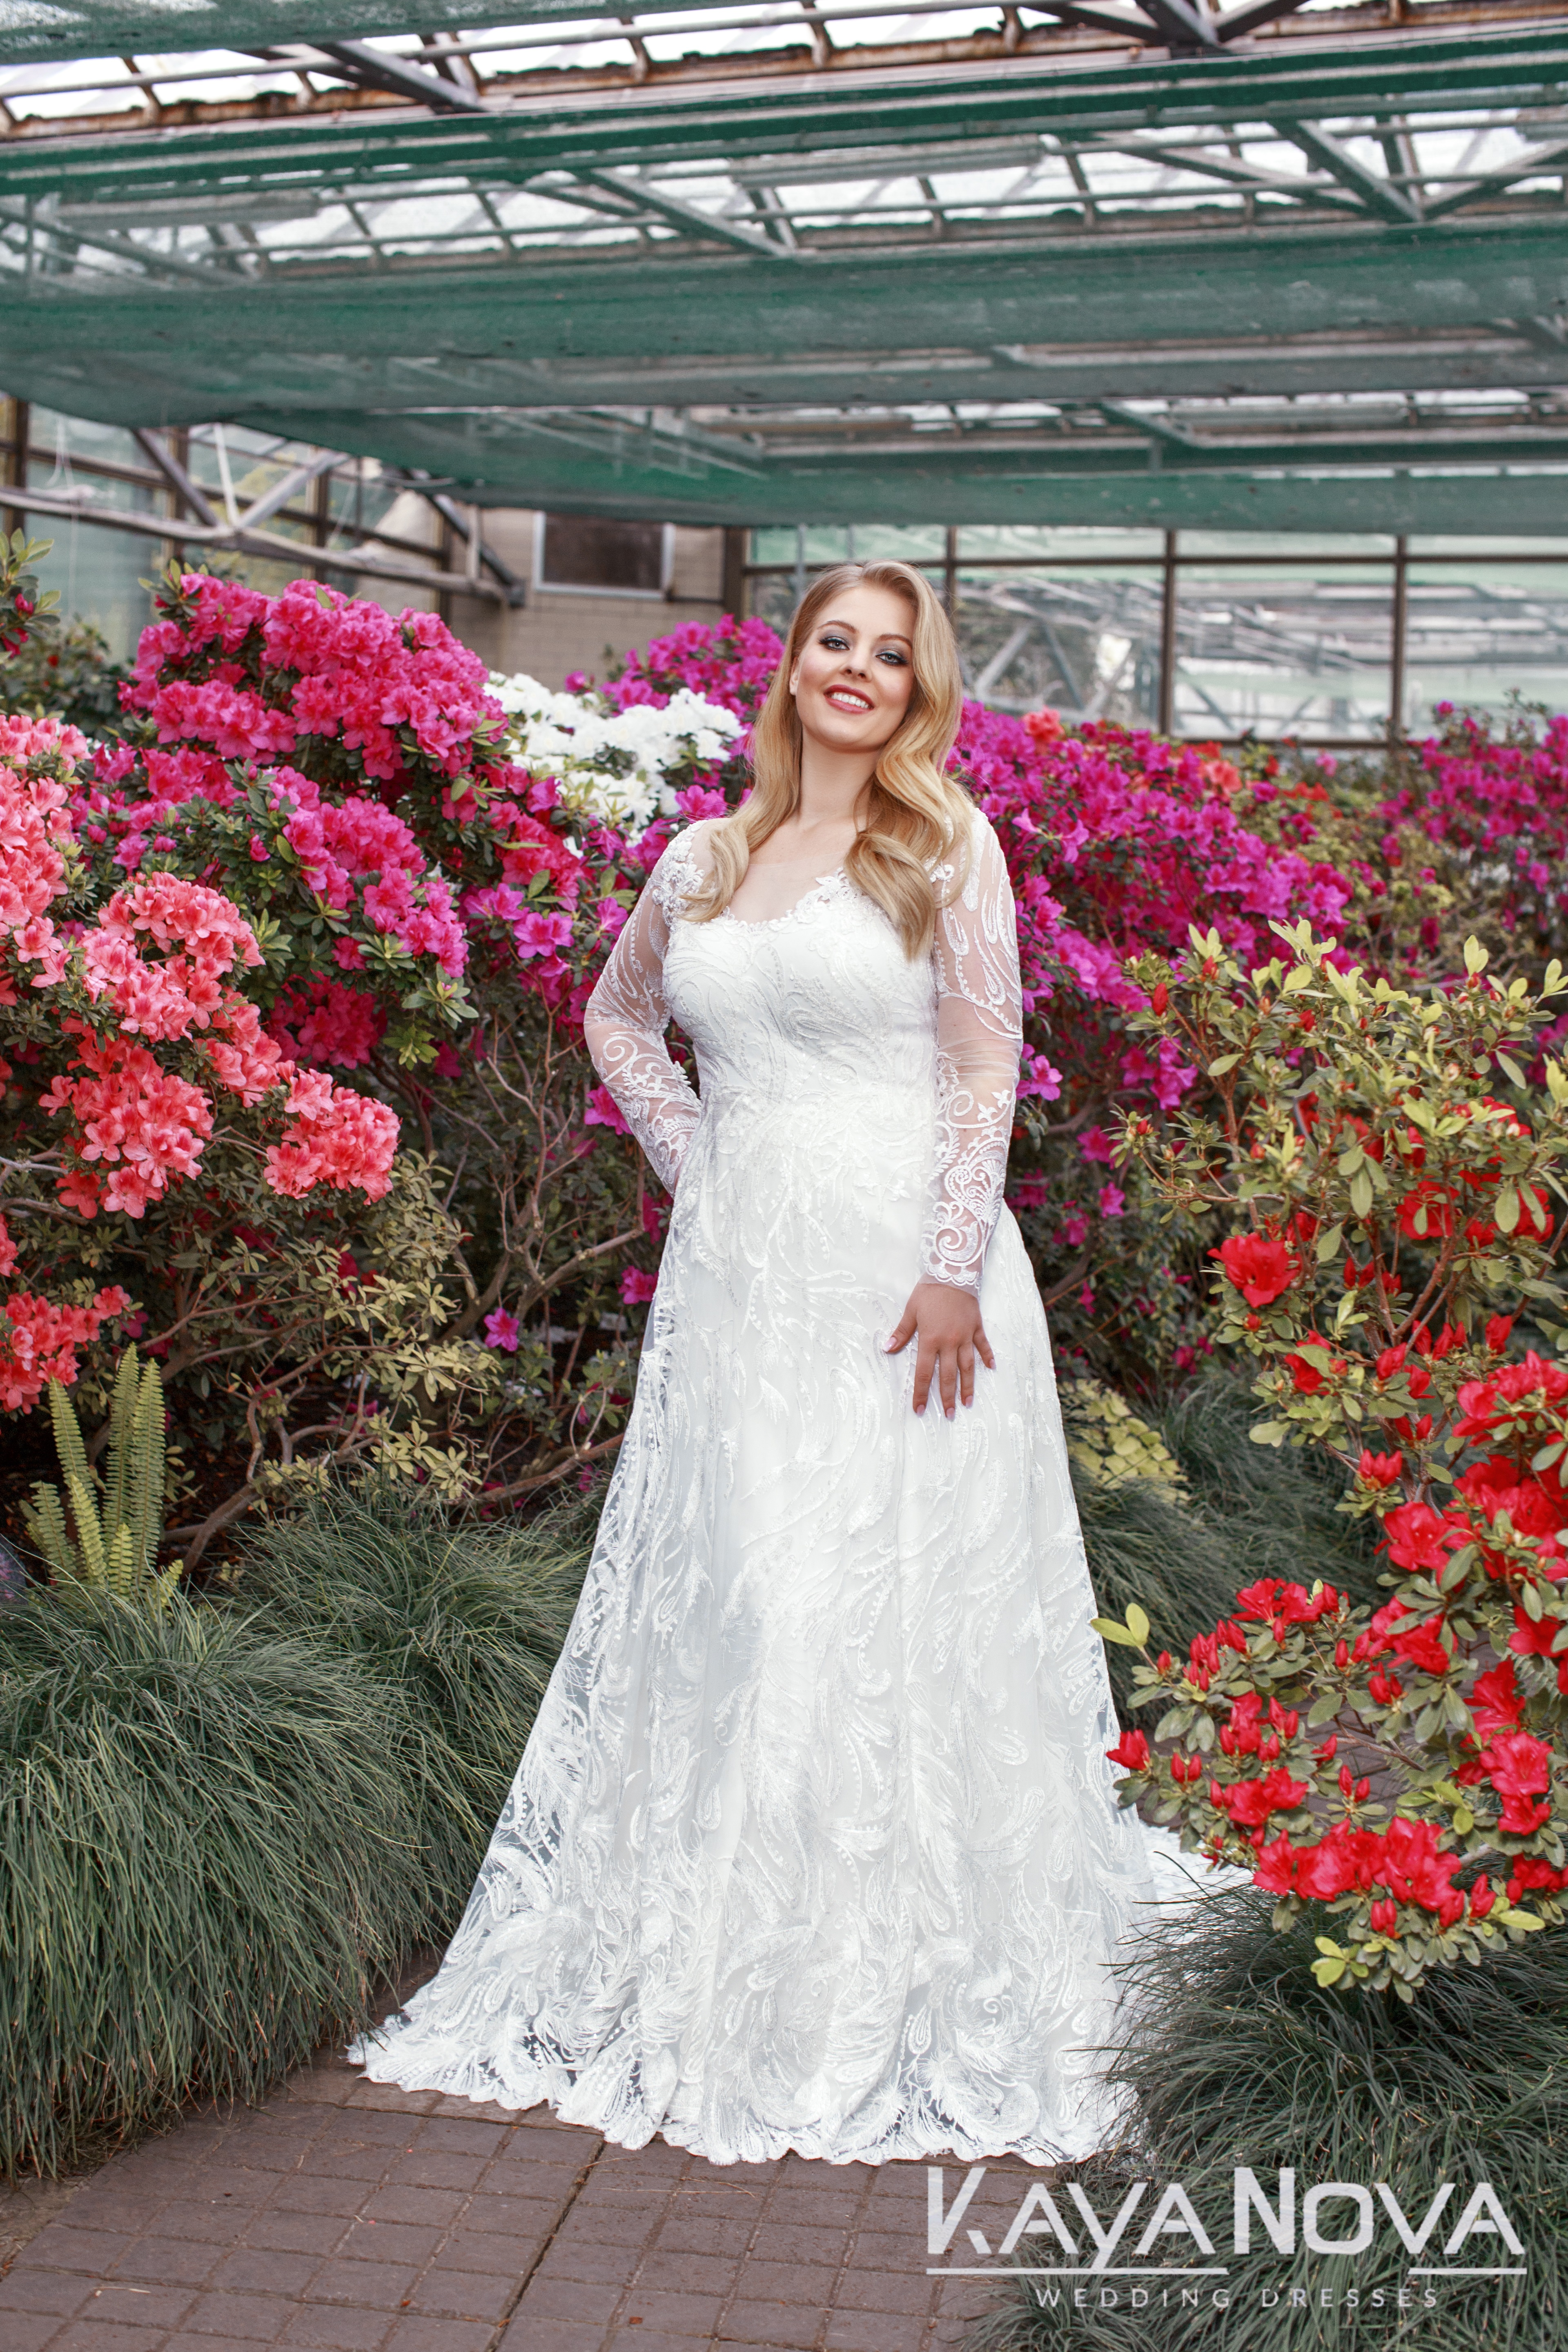 https://kayawedding.com/images/stories/virtuemart/product/768C9684 copy.jpg